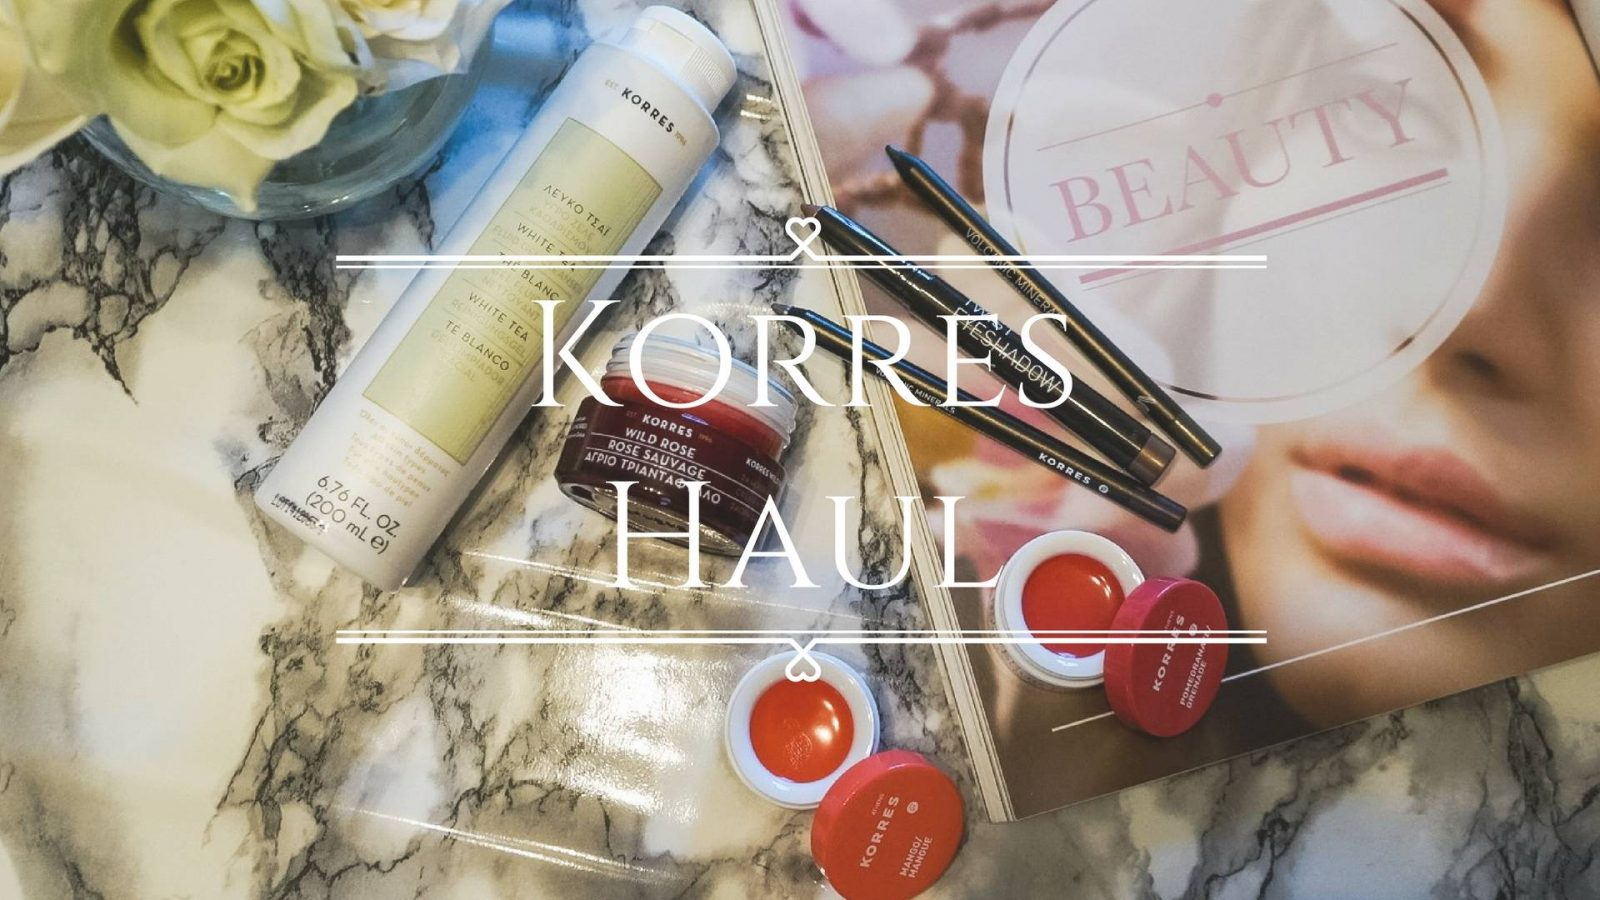 Korres Beauty Haul and Review!